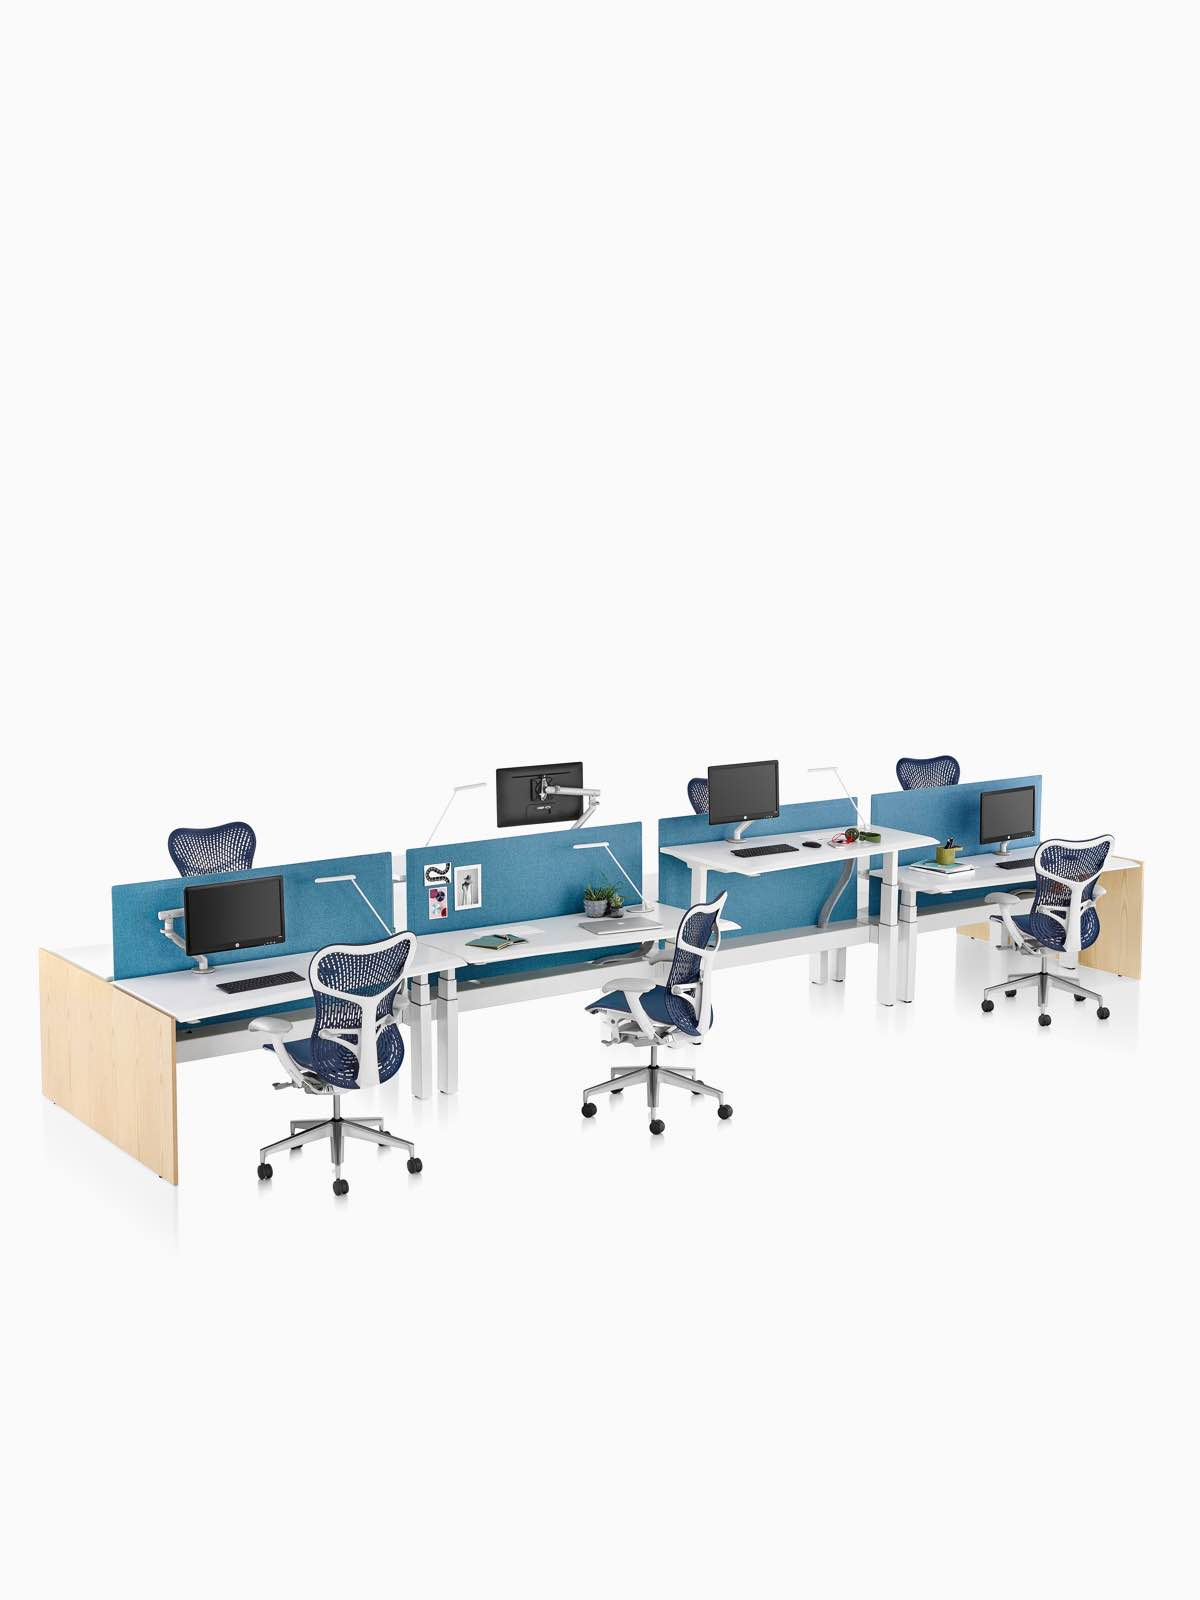 A Renew Link standing desk system with blue Mirra 2 office chairs and blue fabric divider panels. Two of the eight desks are raised to standing height.